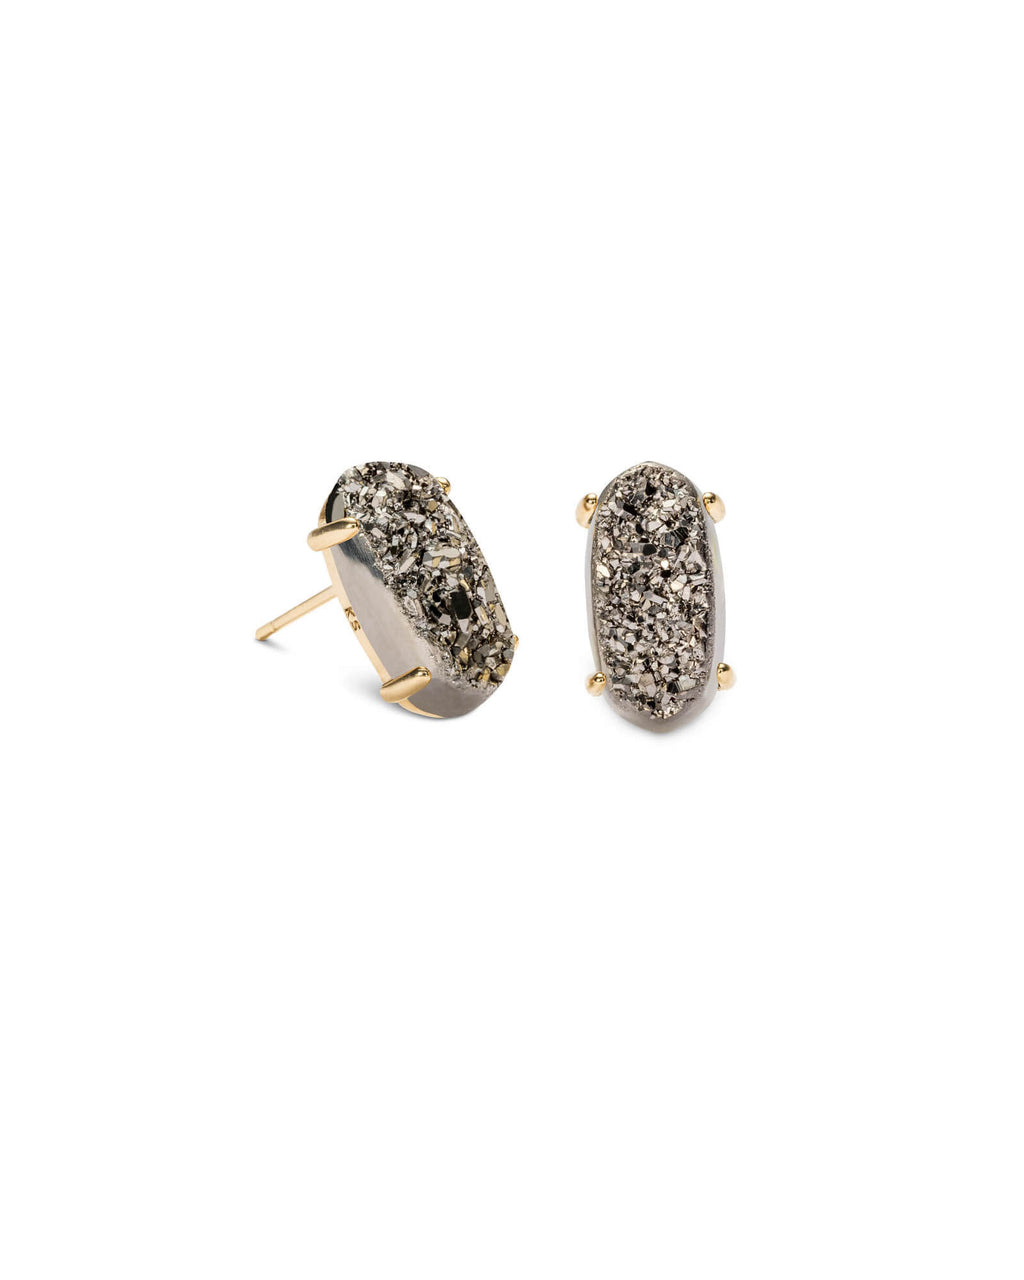 KENDRA SCOTT Betty Gold Stud Earrings - Platinum Drusy